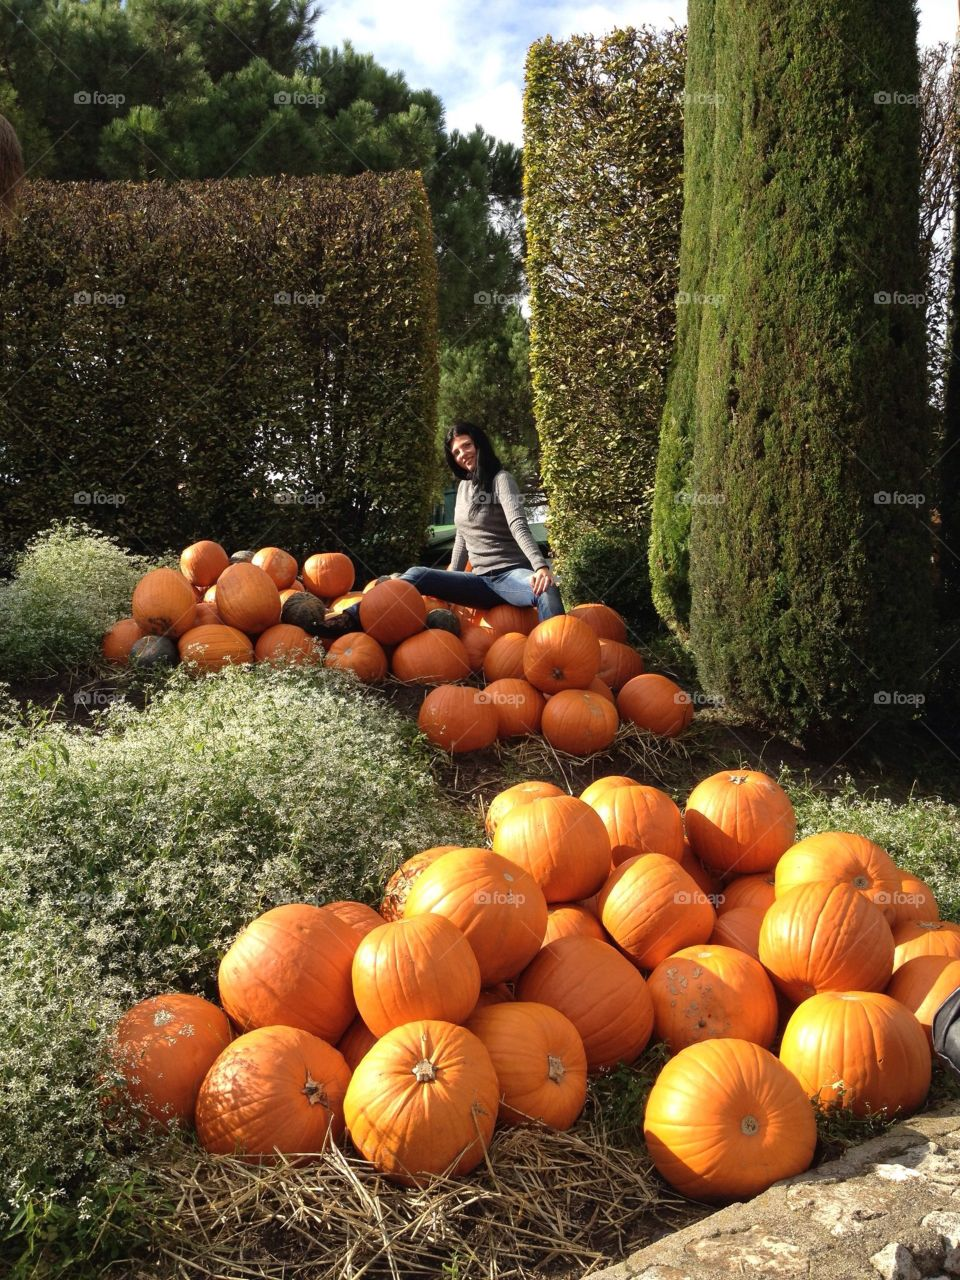 Sitting up the hall of pumpkins